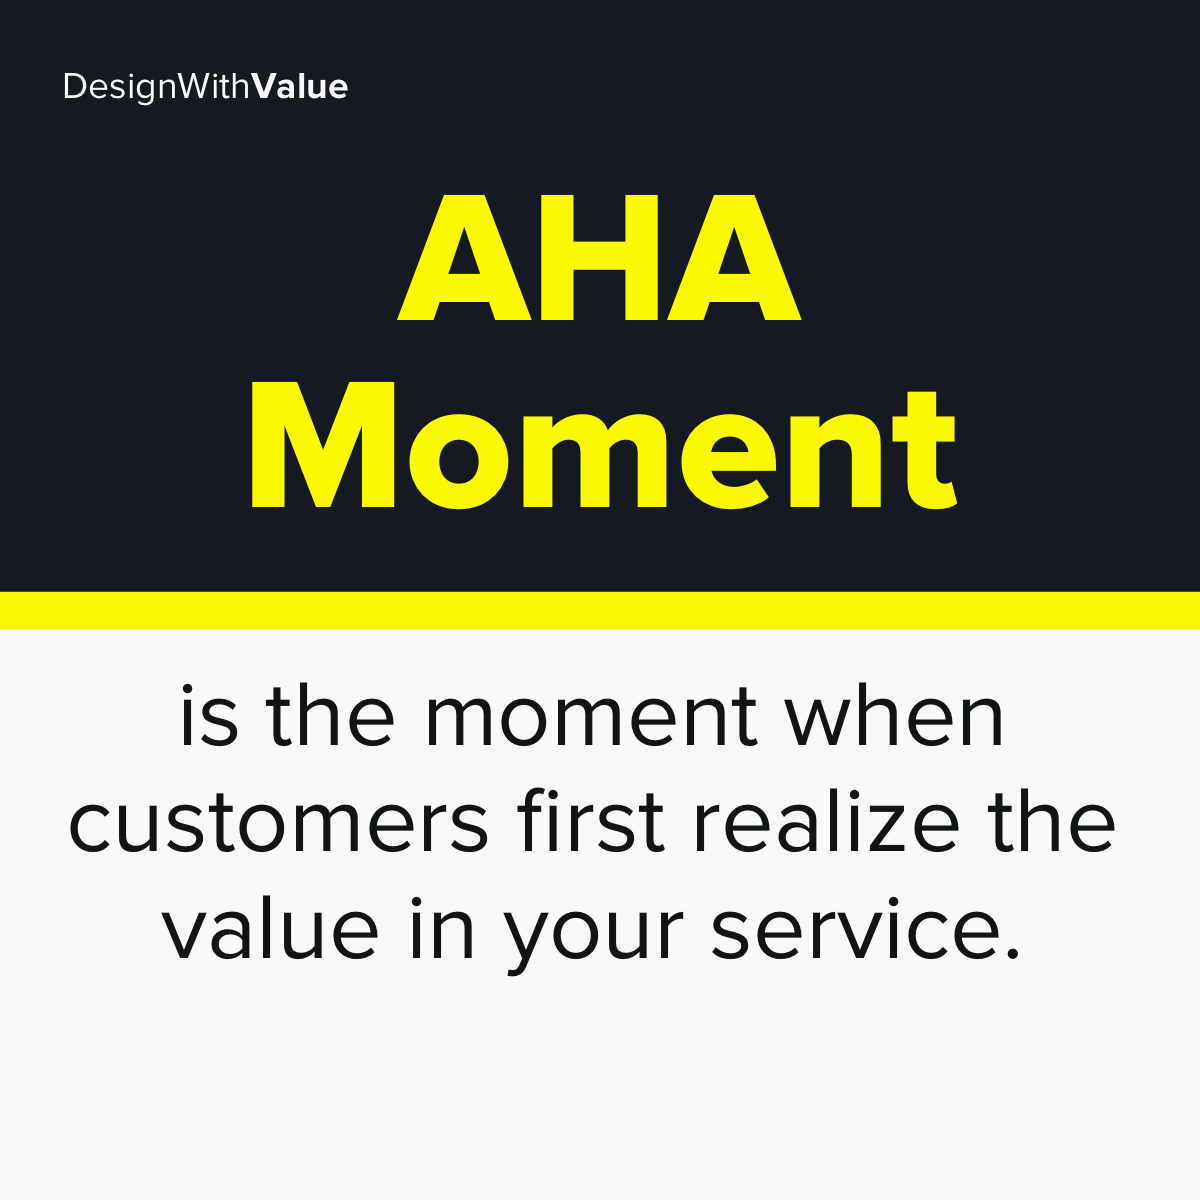 Aha moment is the moment when customers first realize the value in your service.